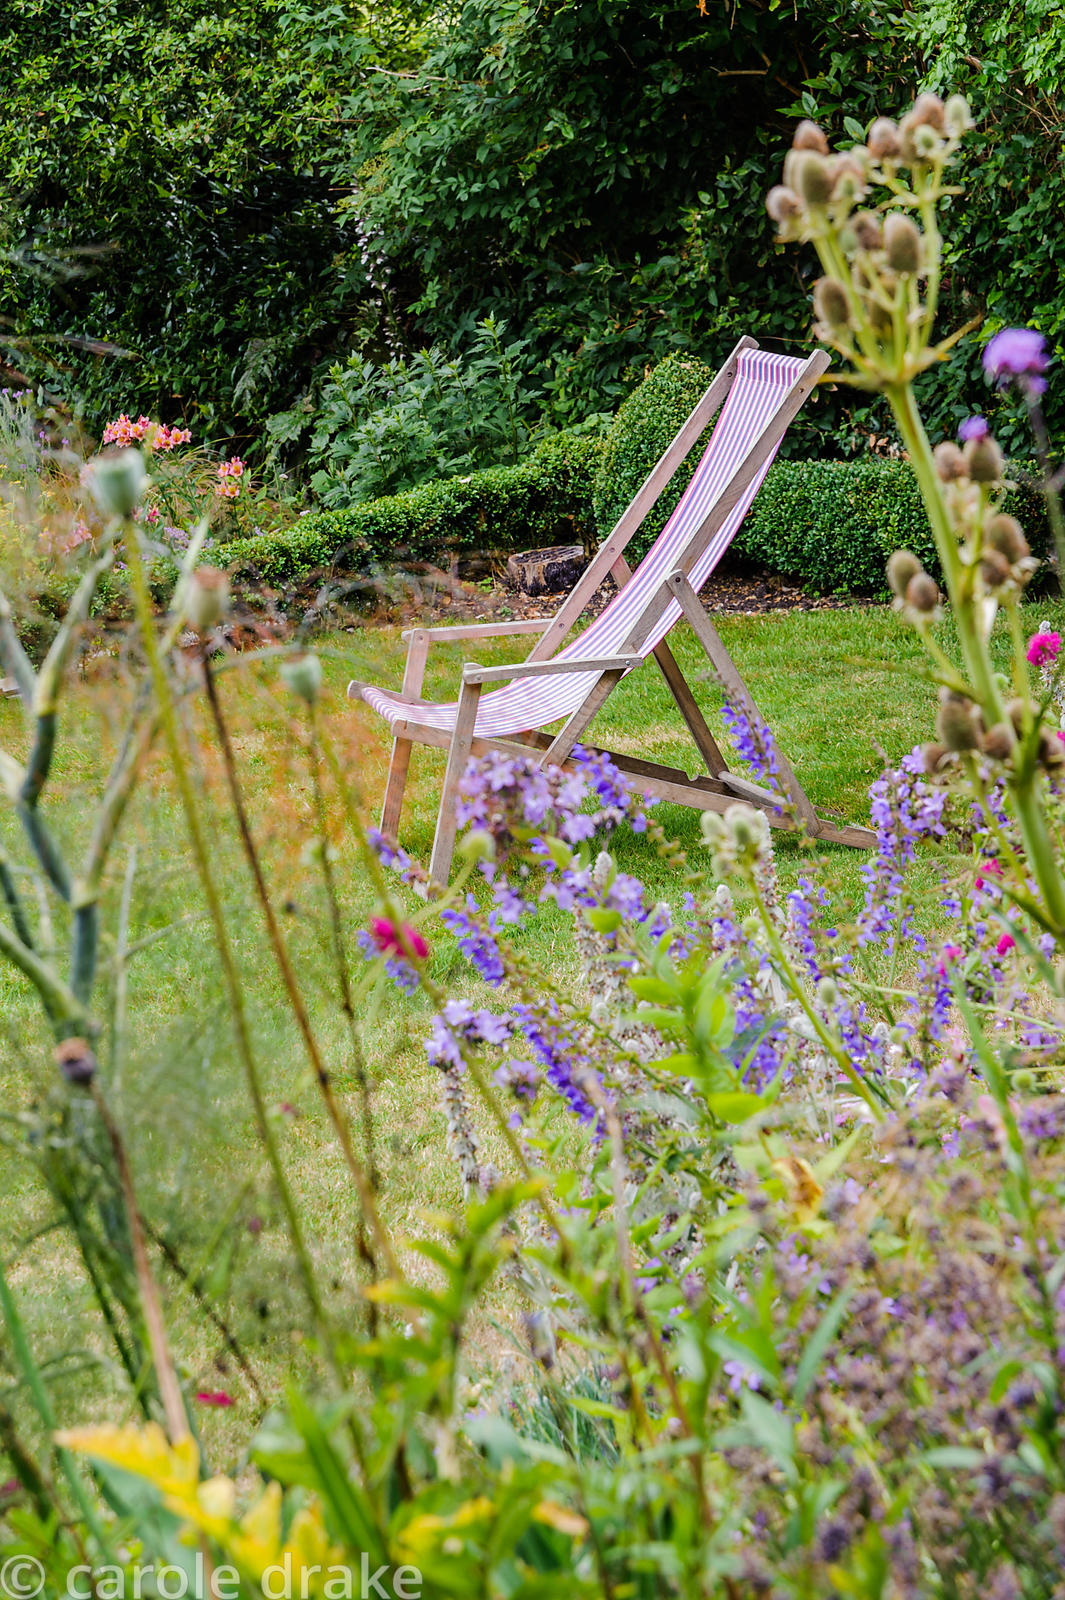 Deckchair on the lawn near the house framed by flowers of agapanthus, salvias, eryngiums and fennel.